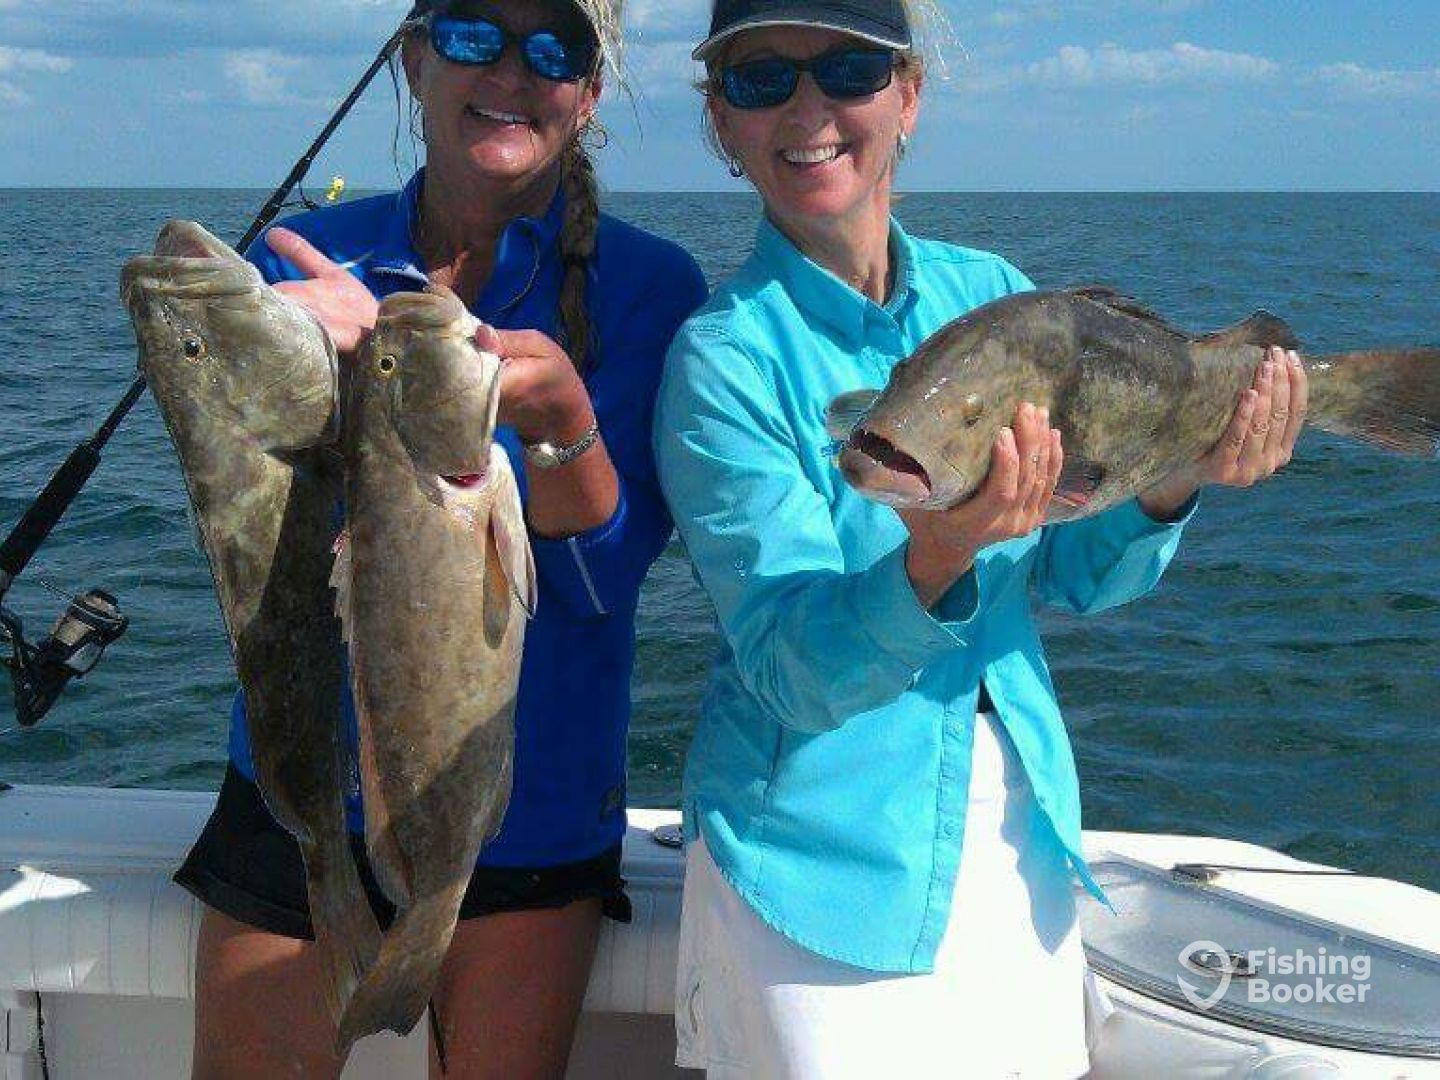 Charter fishing naples naples fl fishingbooker for Fishing charters naples fl